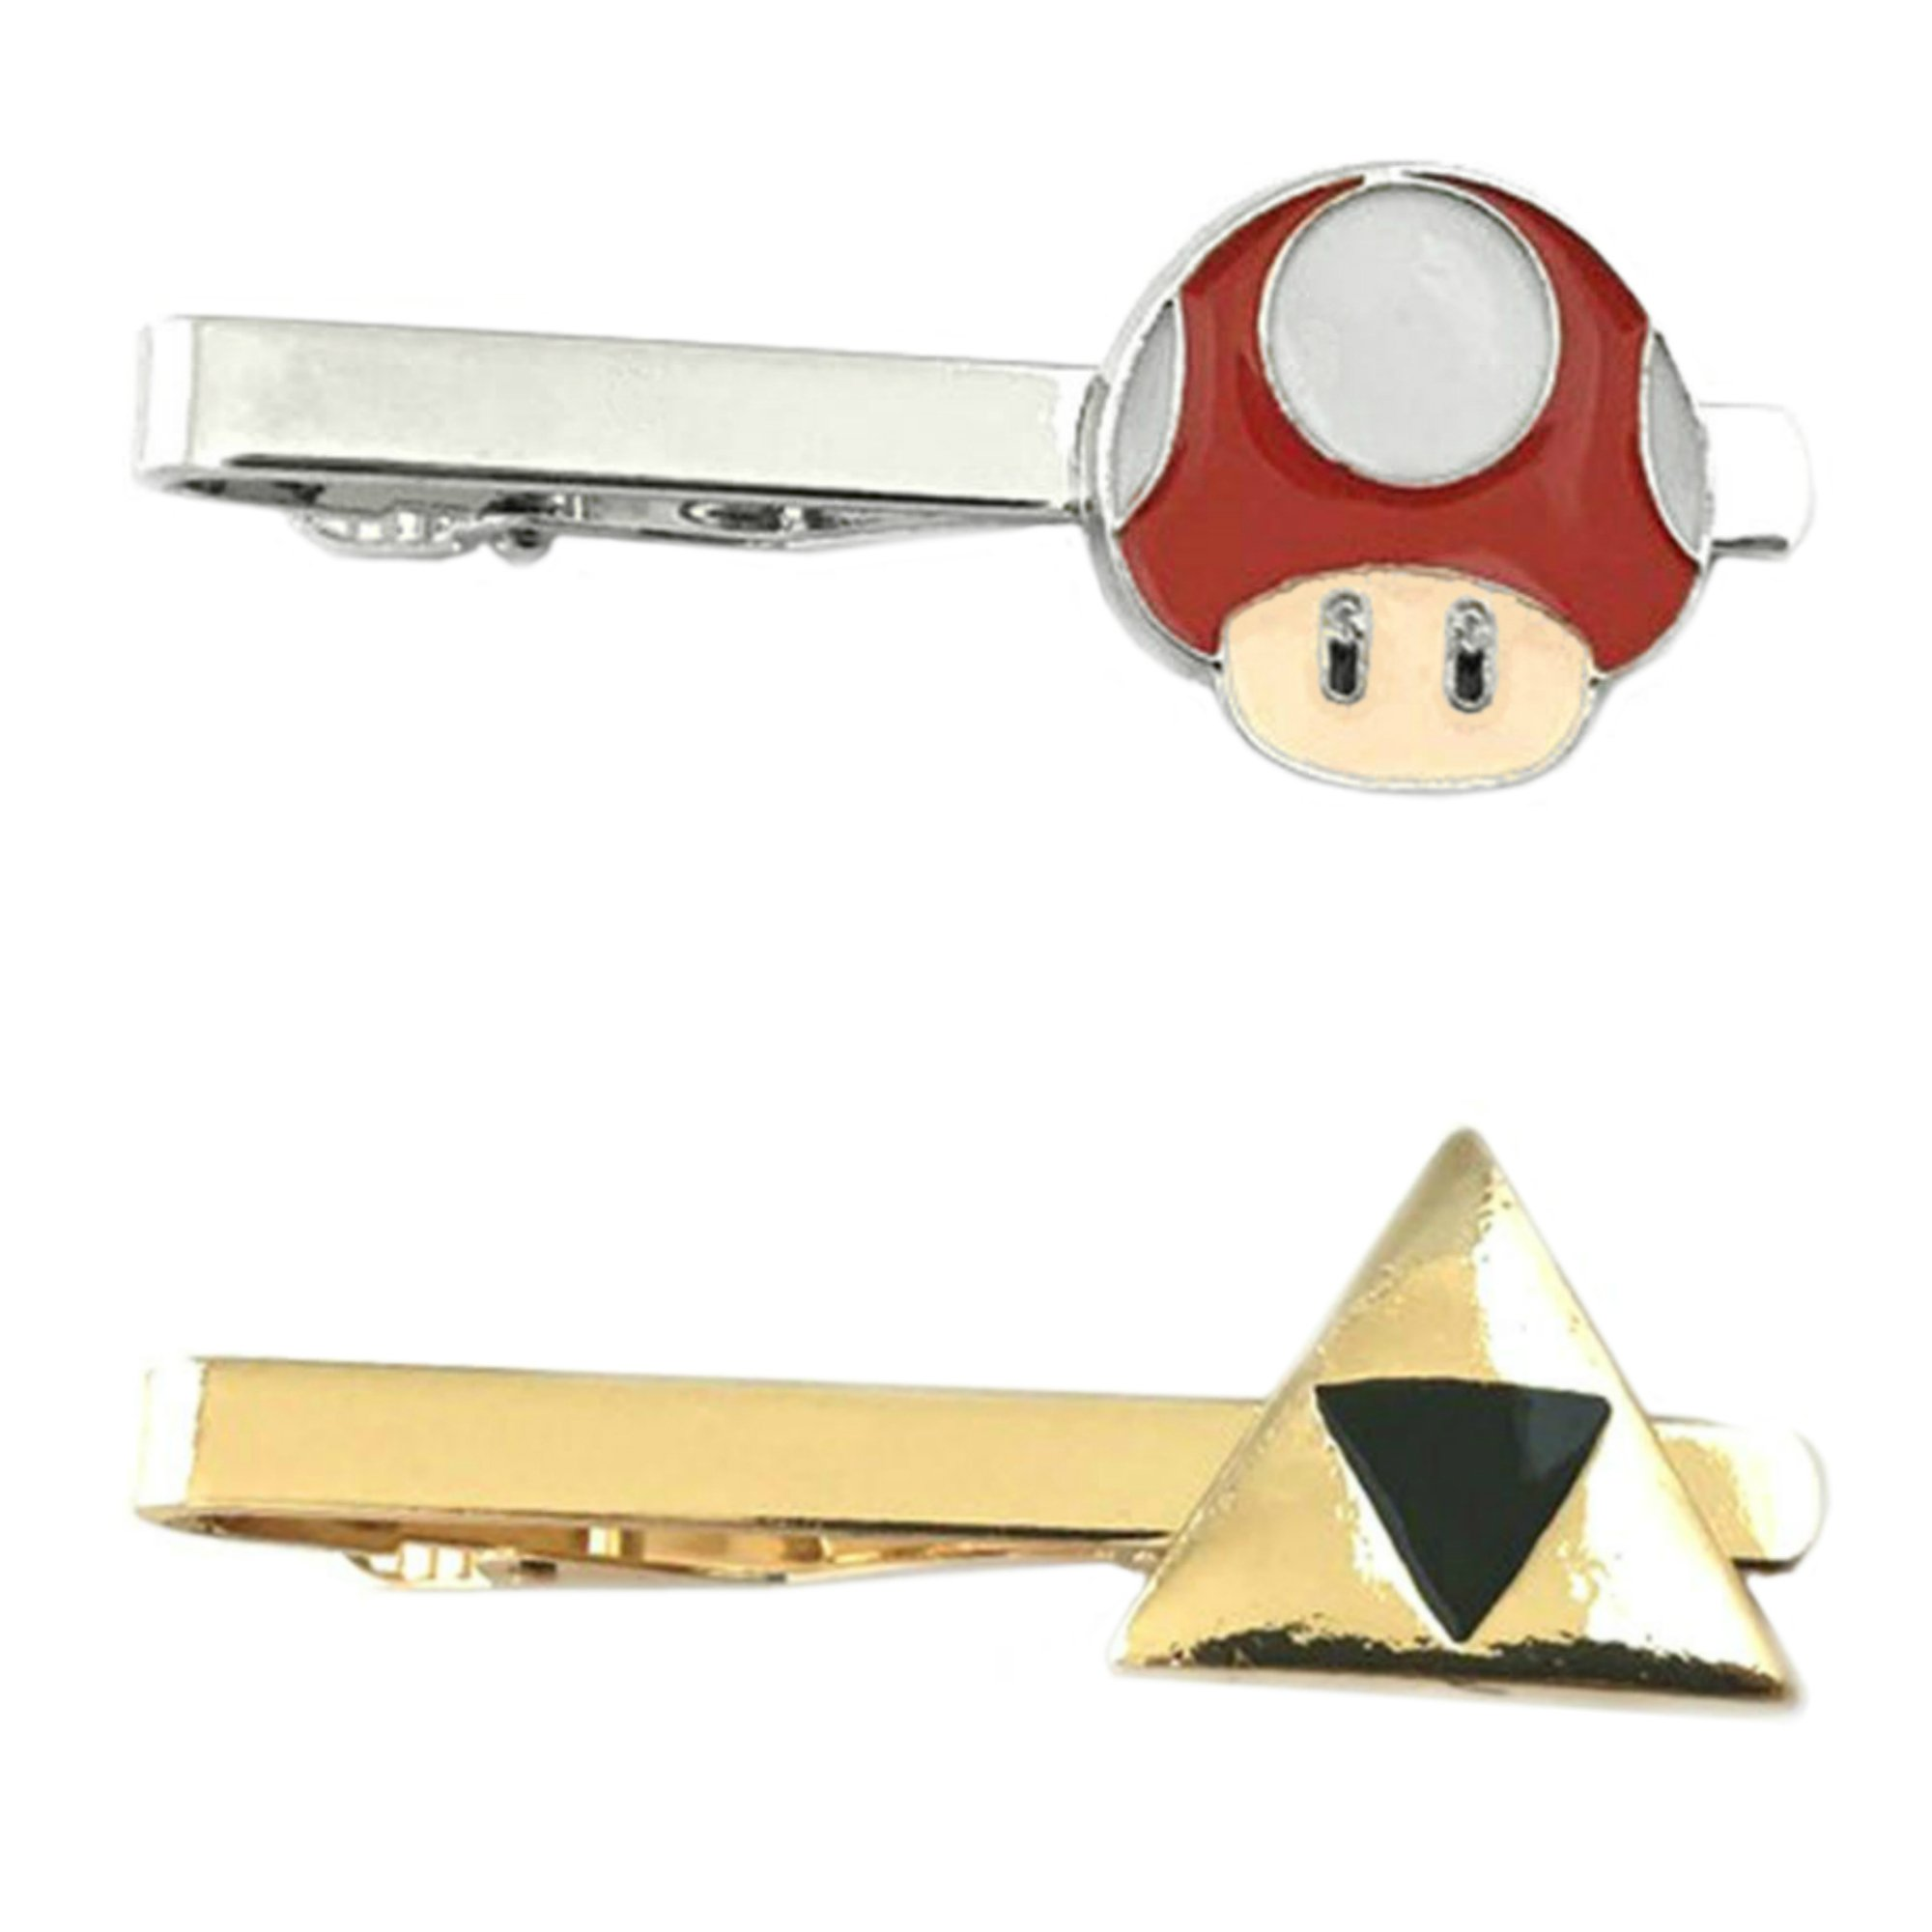 Outlander Video Games - Super Mario 1-UP & Legend of Zelda Hyrule - Tiebar Tie Clasp Set of 2 Wedding Superhero Logo w/Gift Box